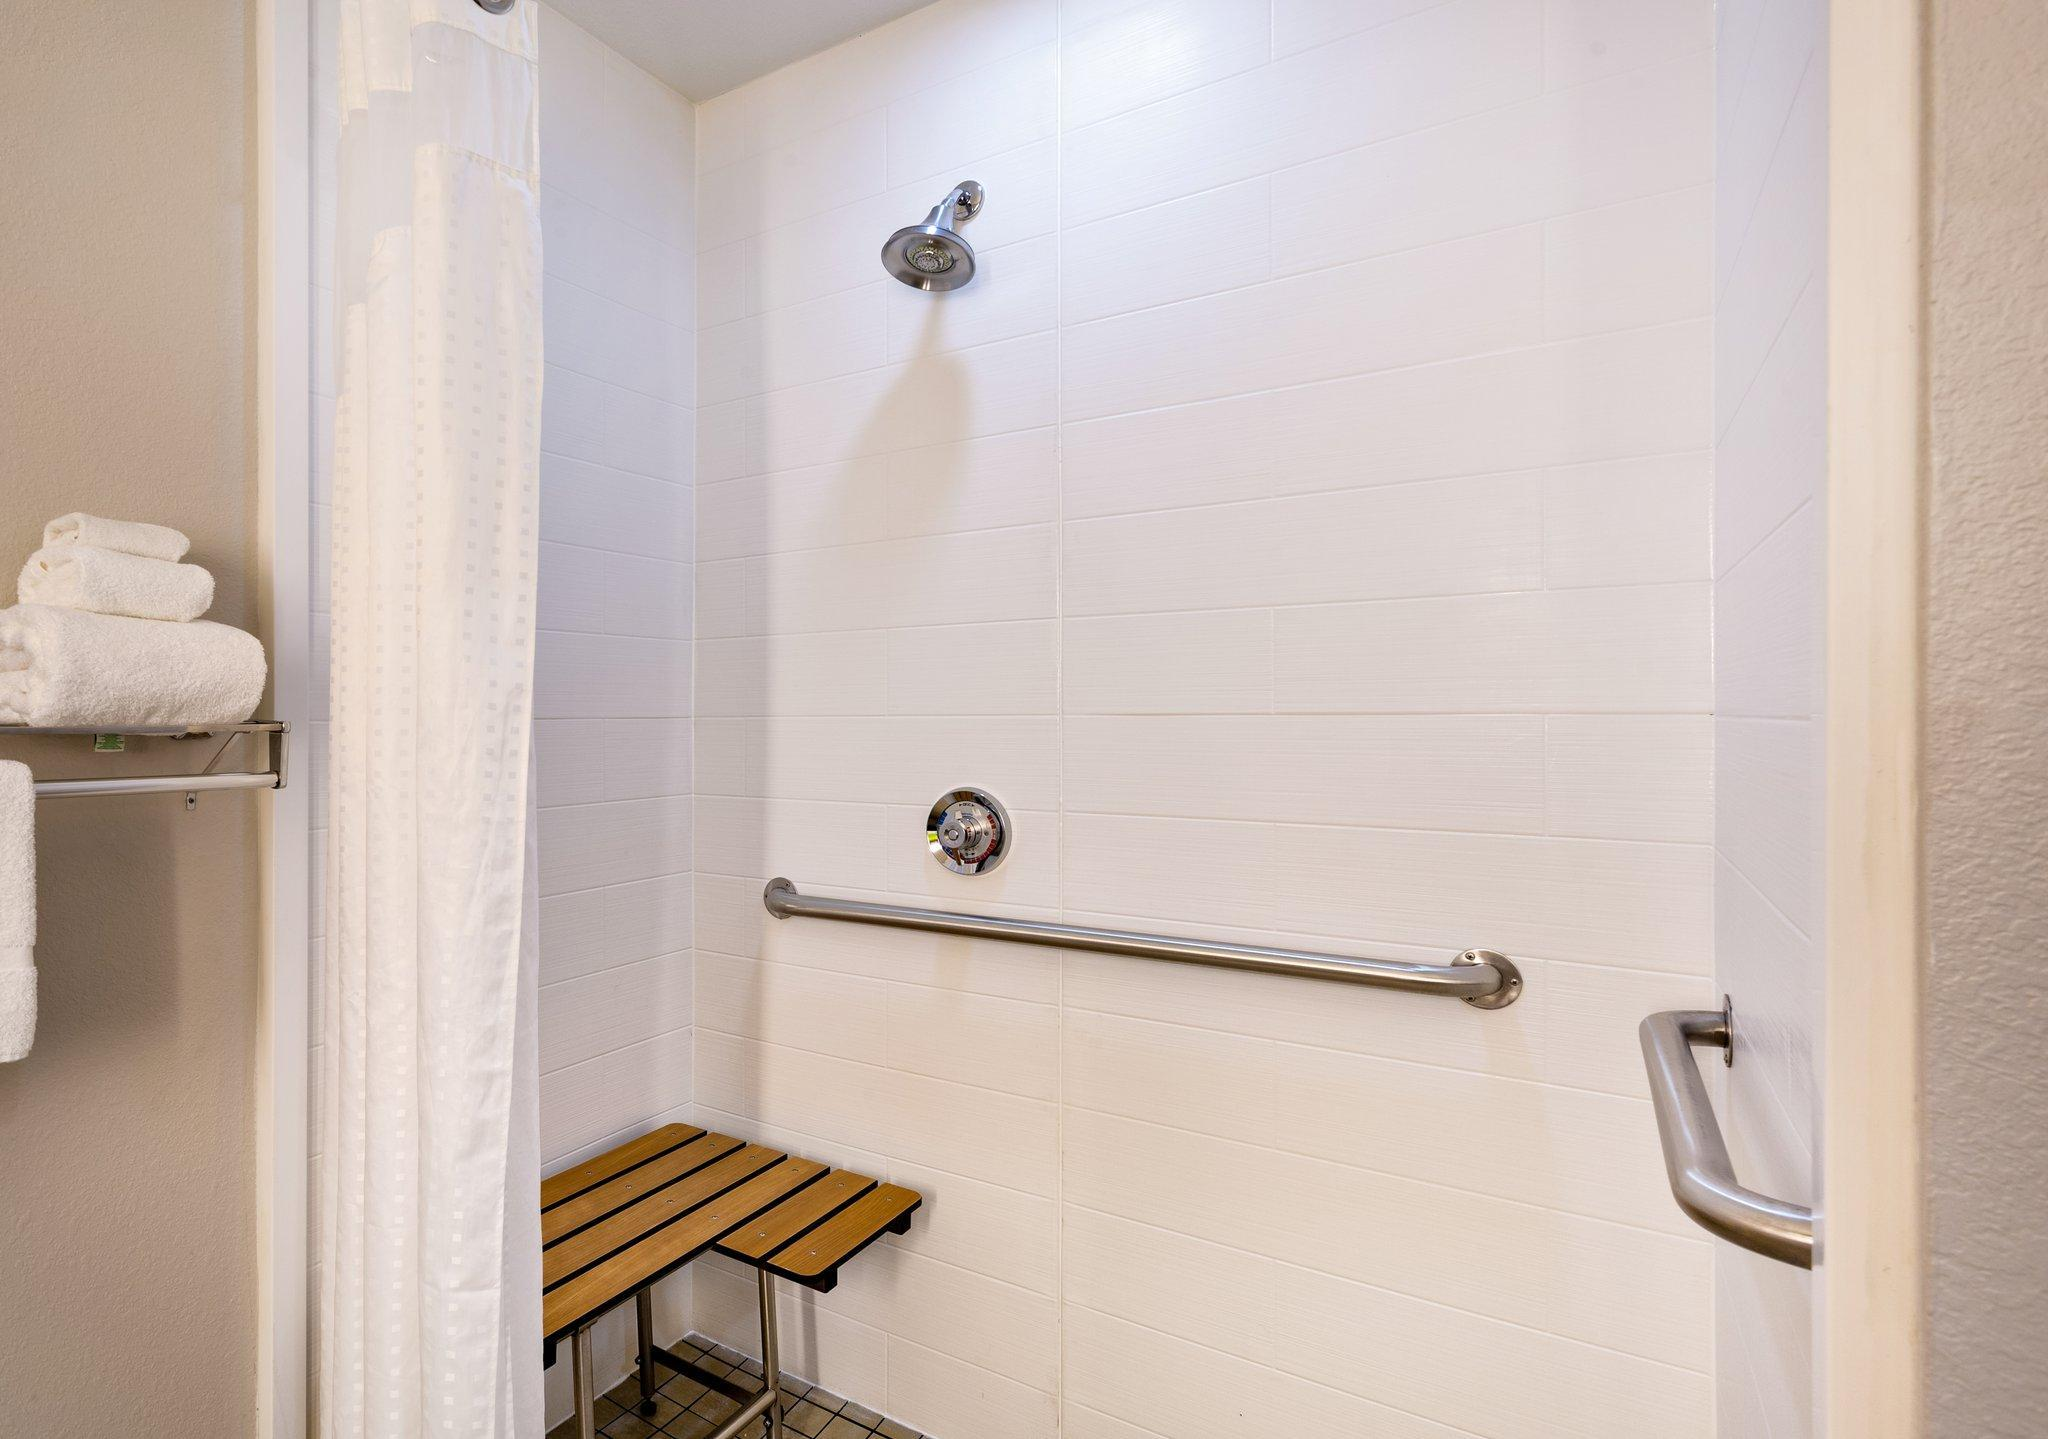 2 Bed Mobility Accessible Roll Shower Non-Smoking